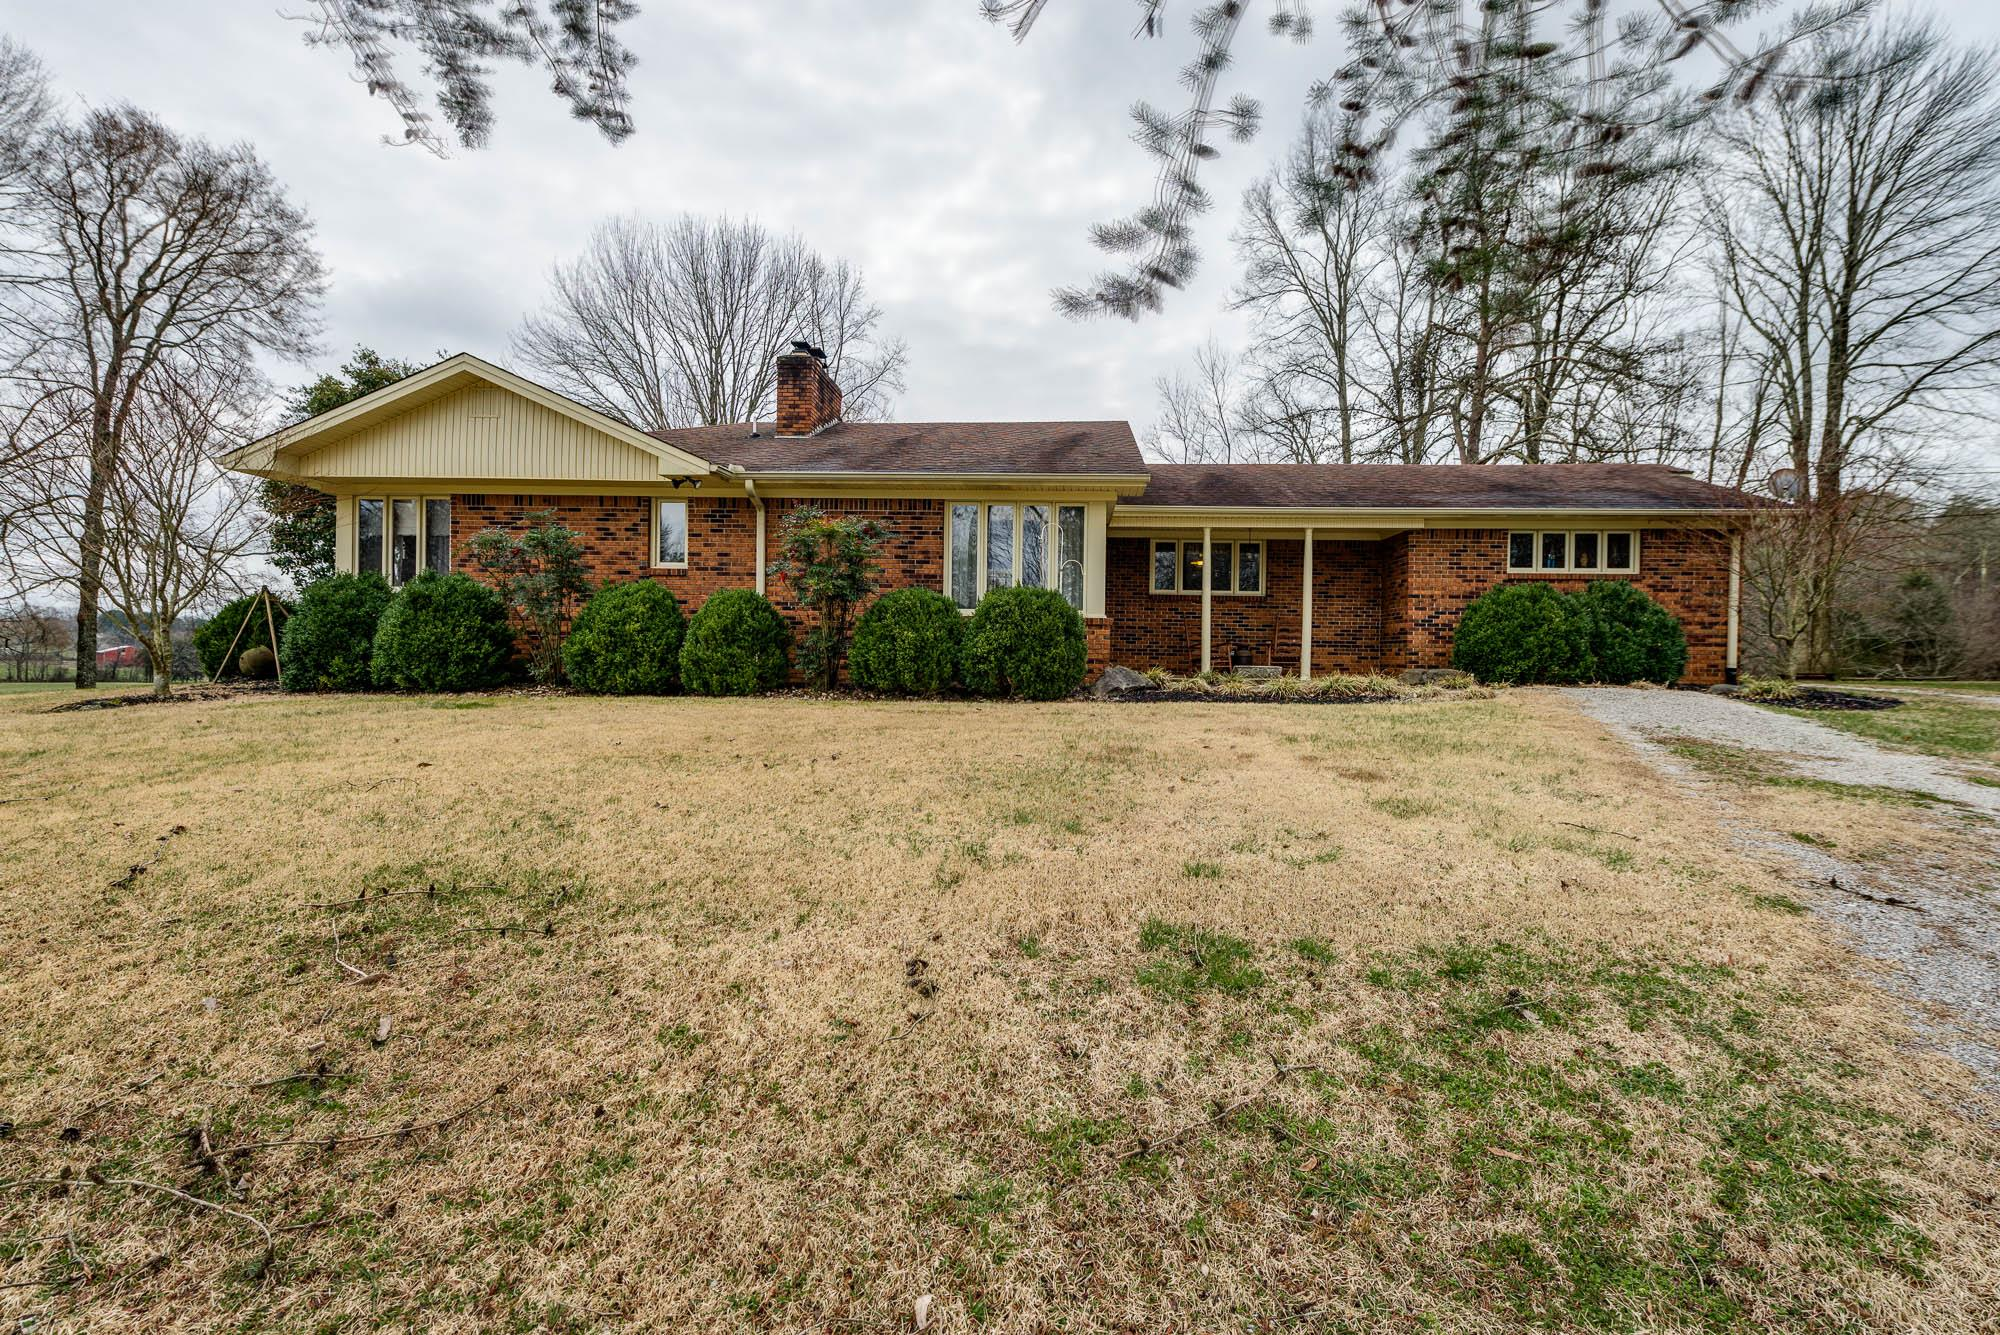 6595 Clay Co Hwy, Celina, TN 38551 - Celina, TN real estate listing